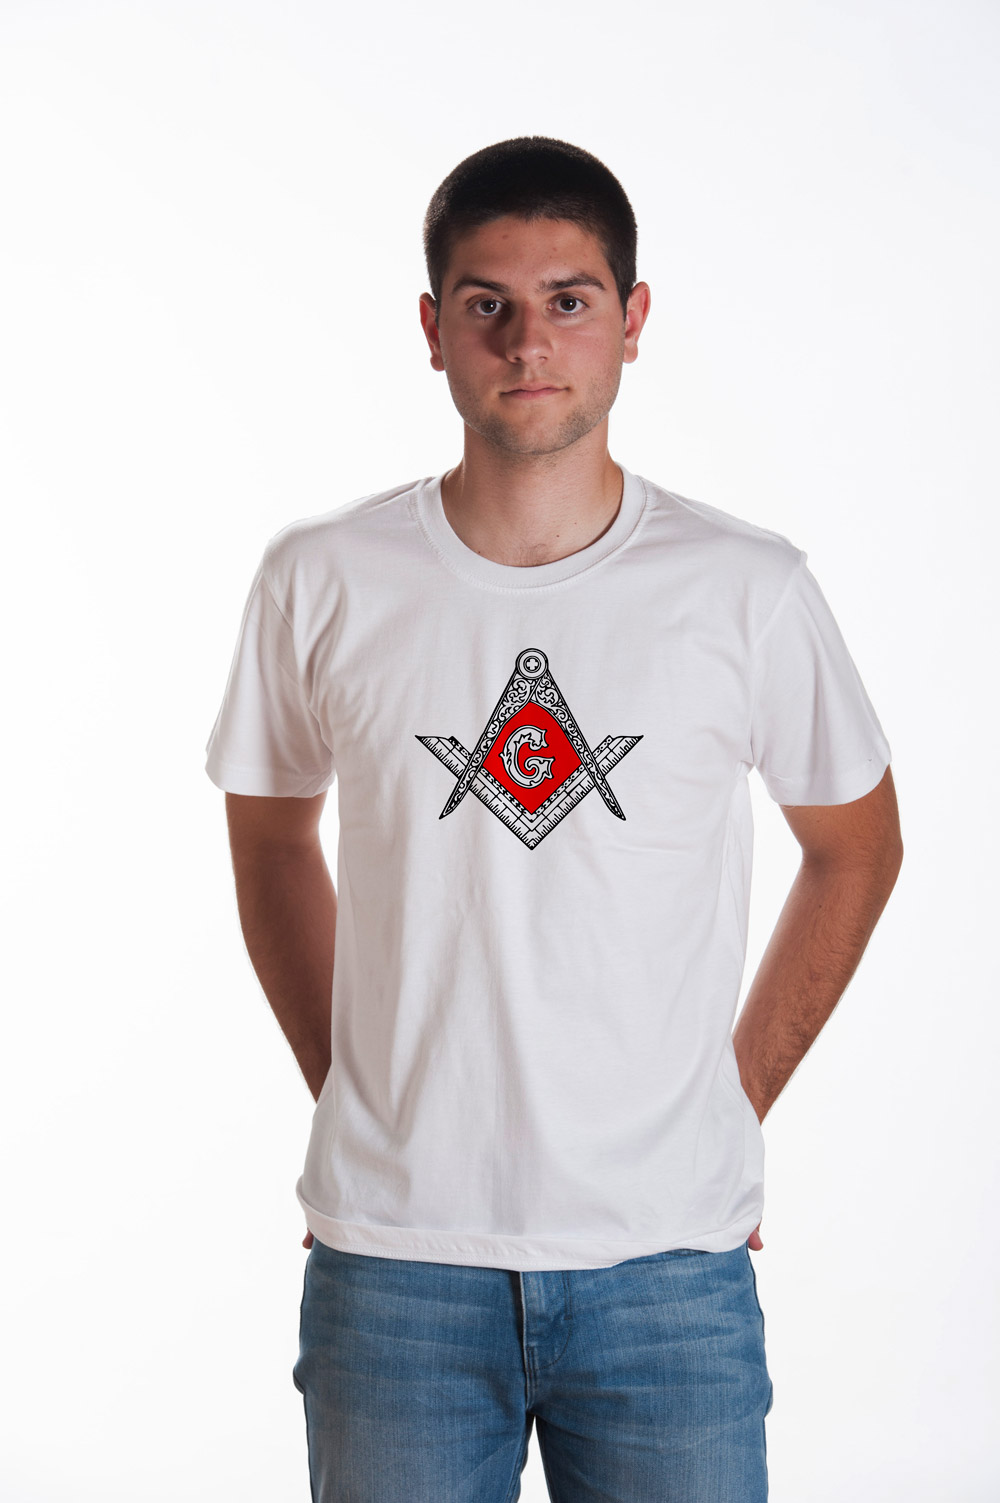 Masonic Symbol 1 Printed T shirt | Mason Tank top | Secret Society Tee